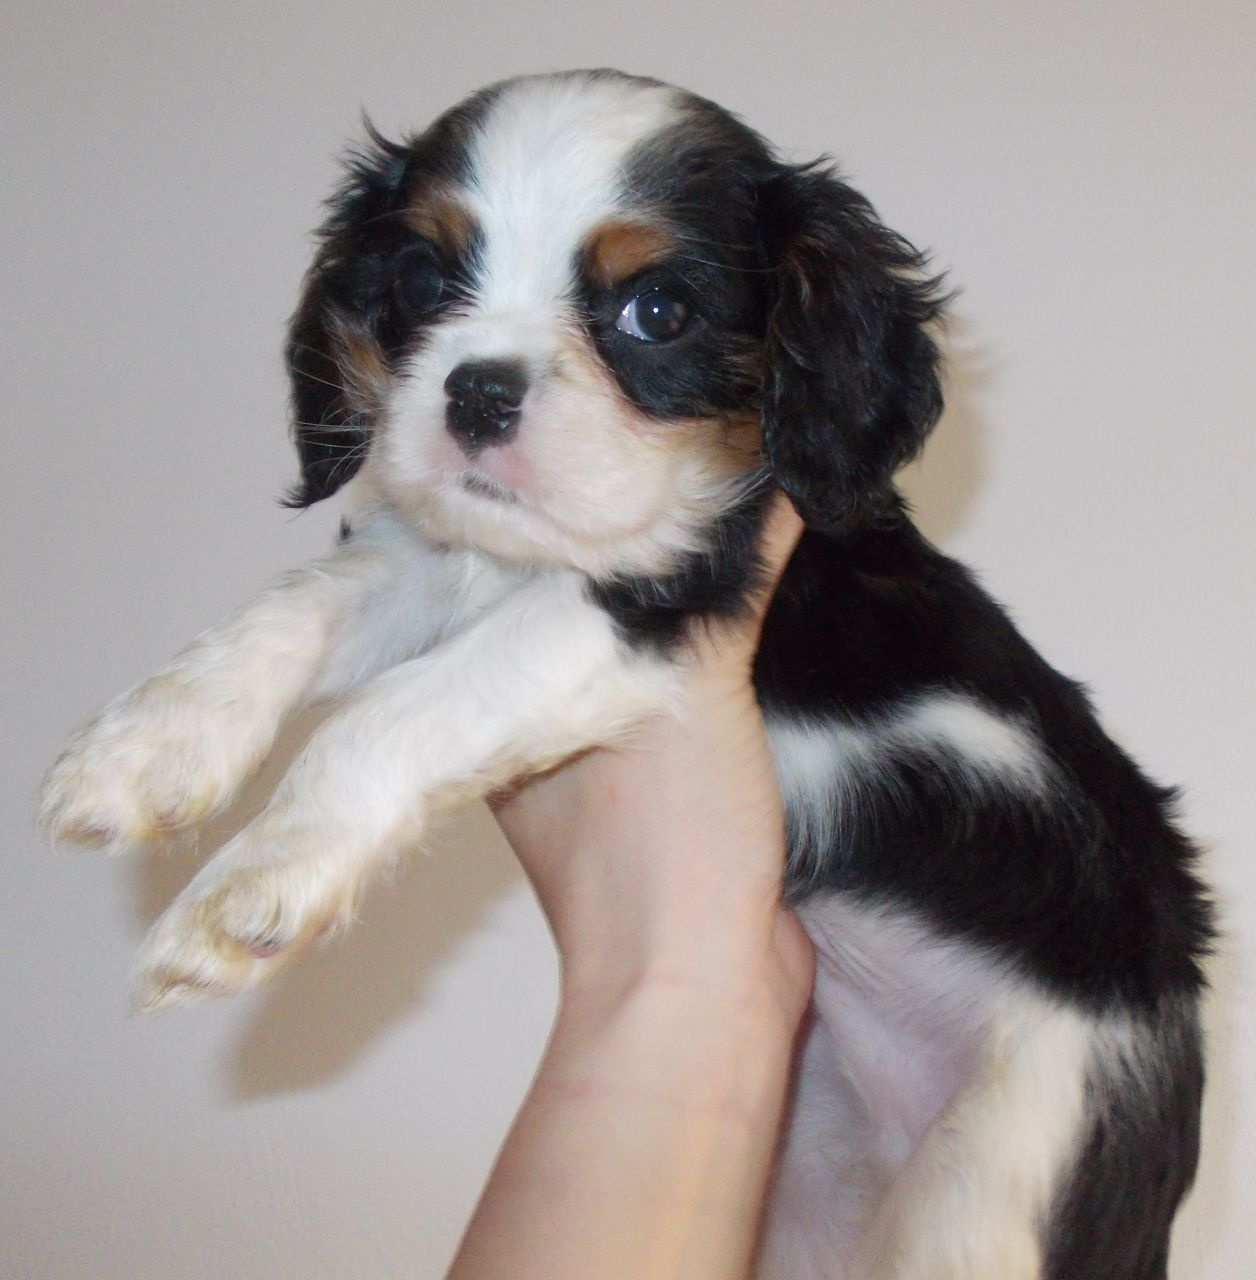 King Charles Spaniel Puppies: King Cavalier King Charles Spaniel Puppies Ready July Bromsgrove Breed